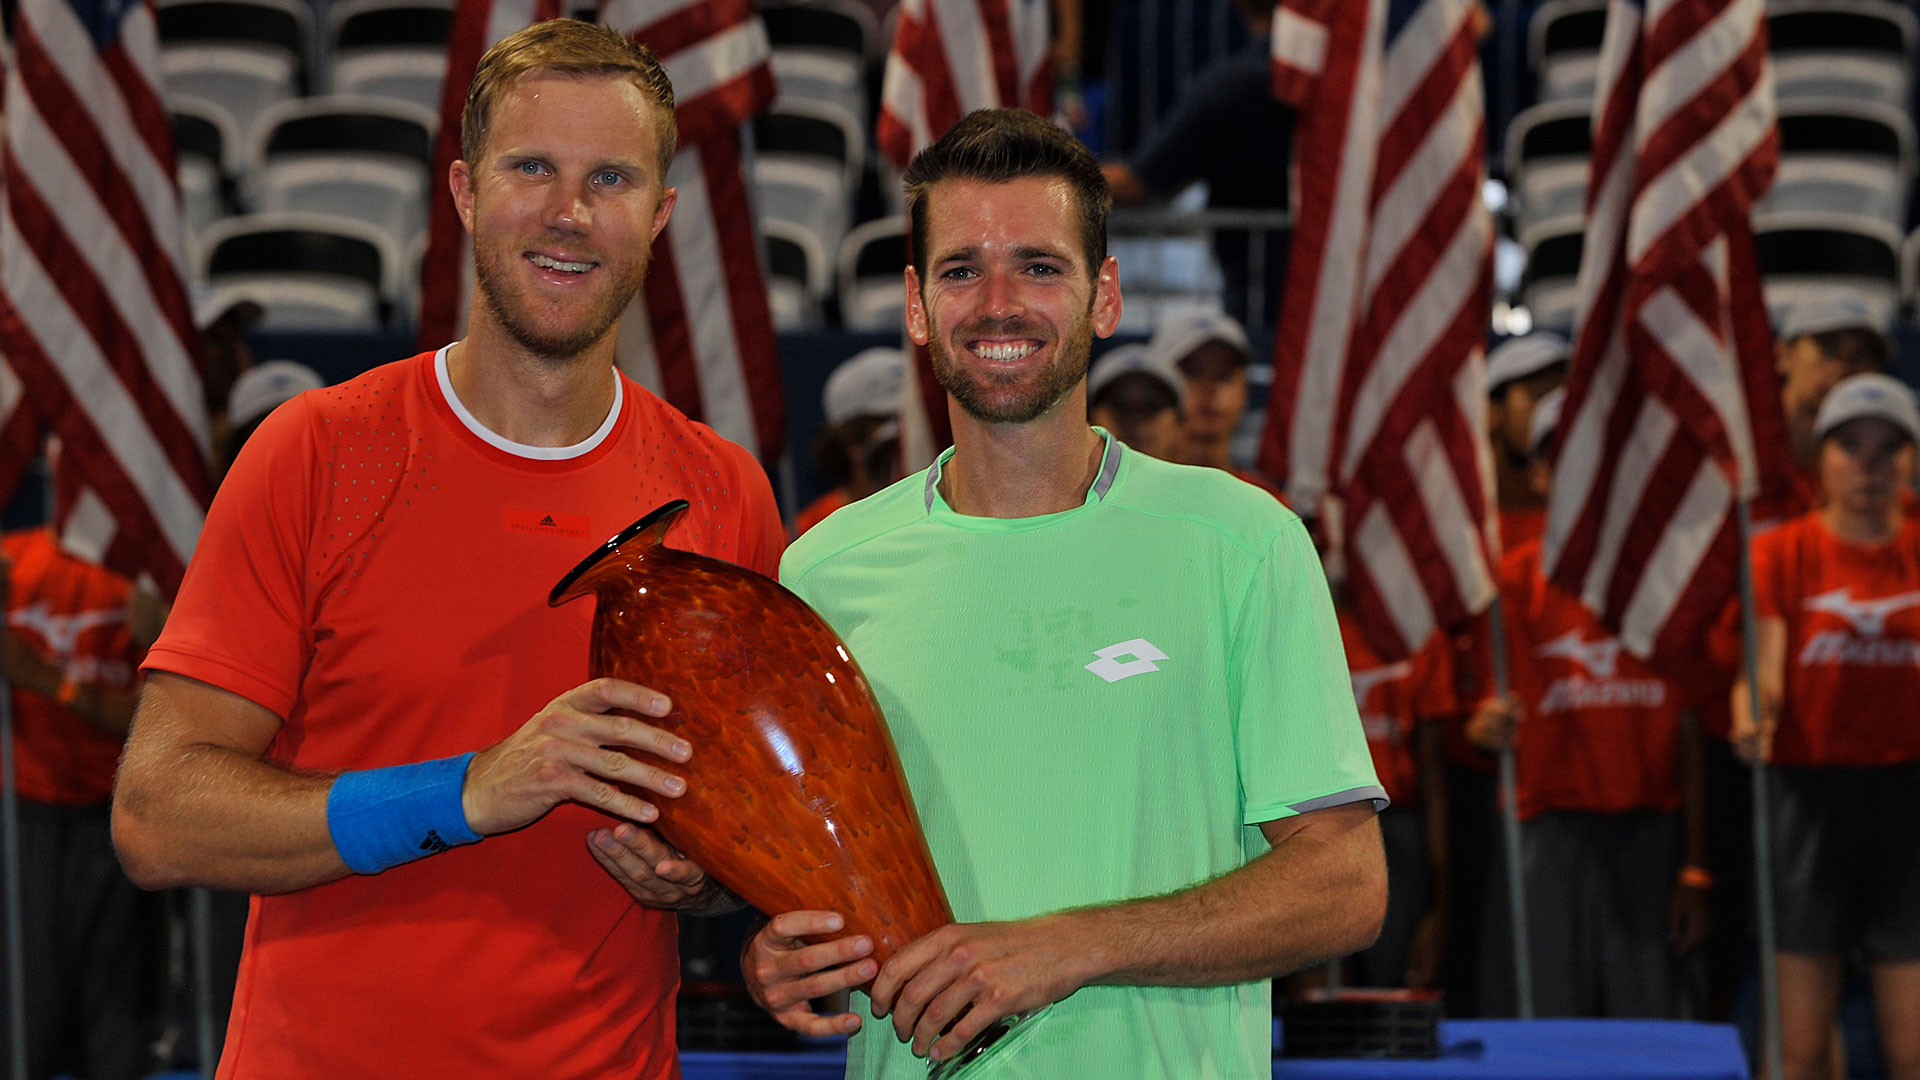 Dominic Inglot and Austin Krajicek take the title at Atlanta 2019